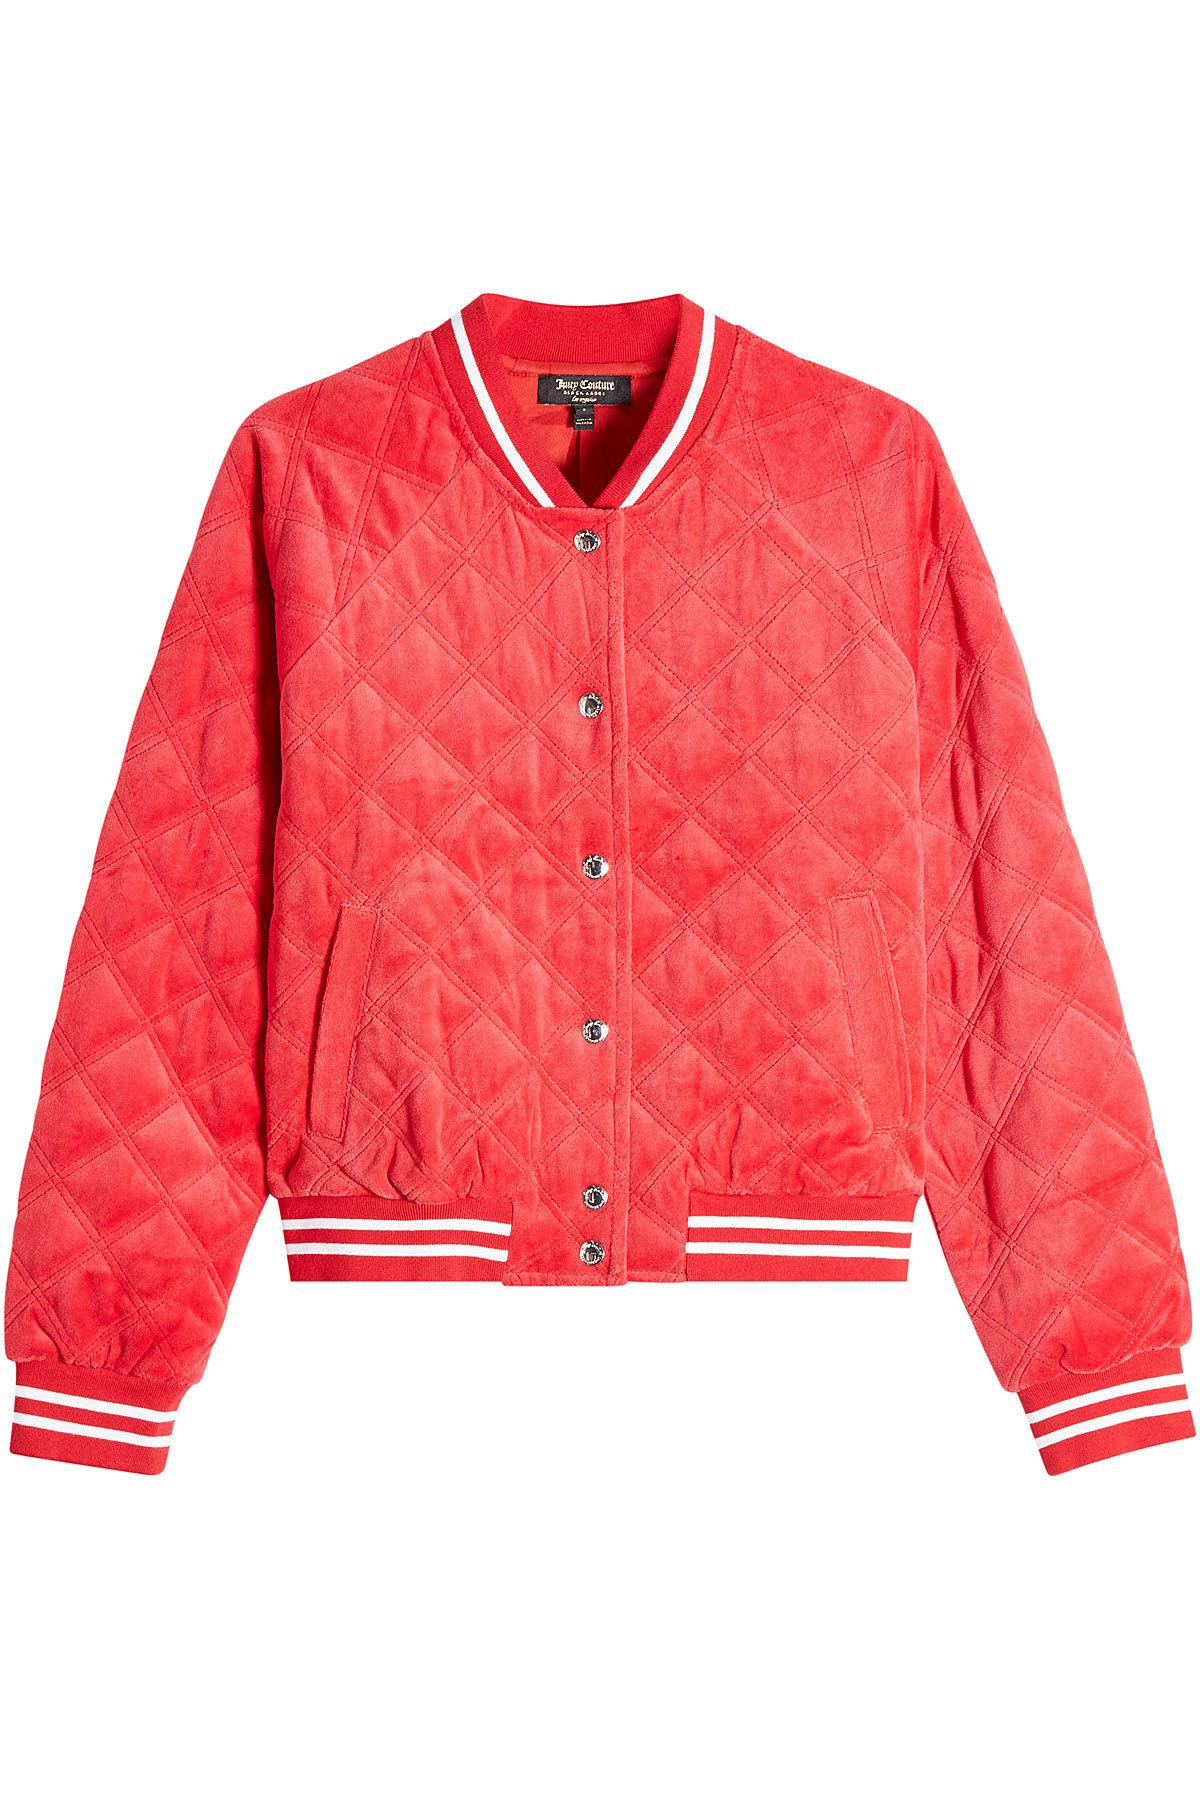 Juicy Couture Quilted Velour Bomber Jacket In Red